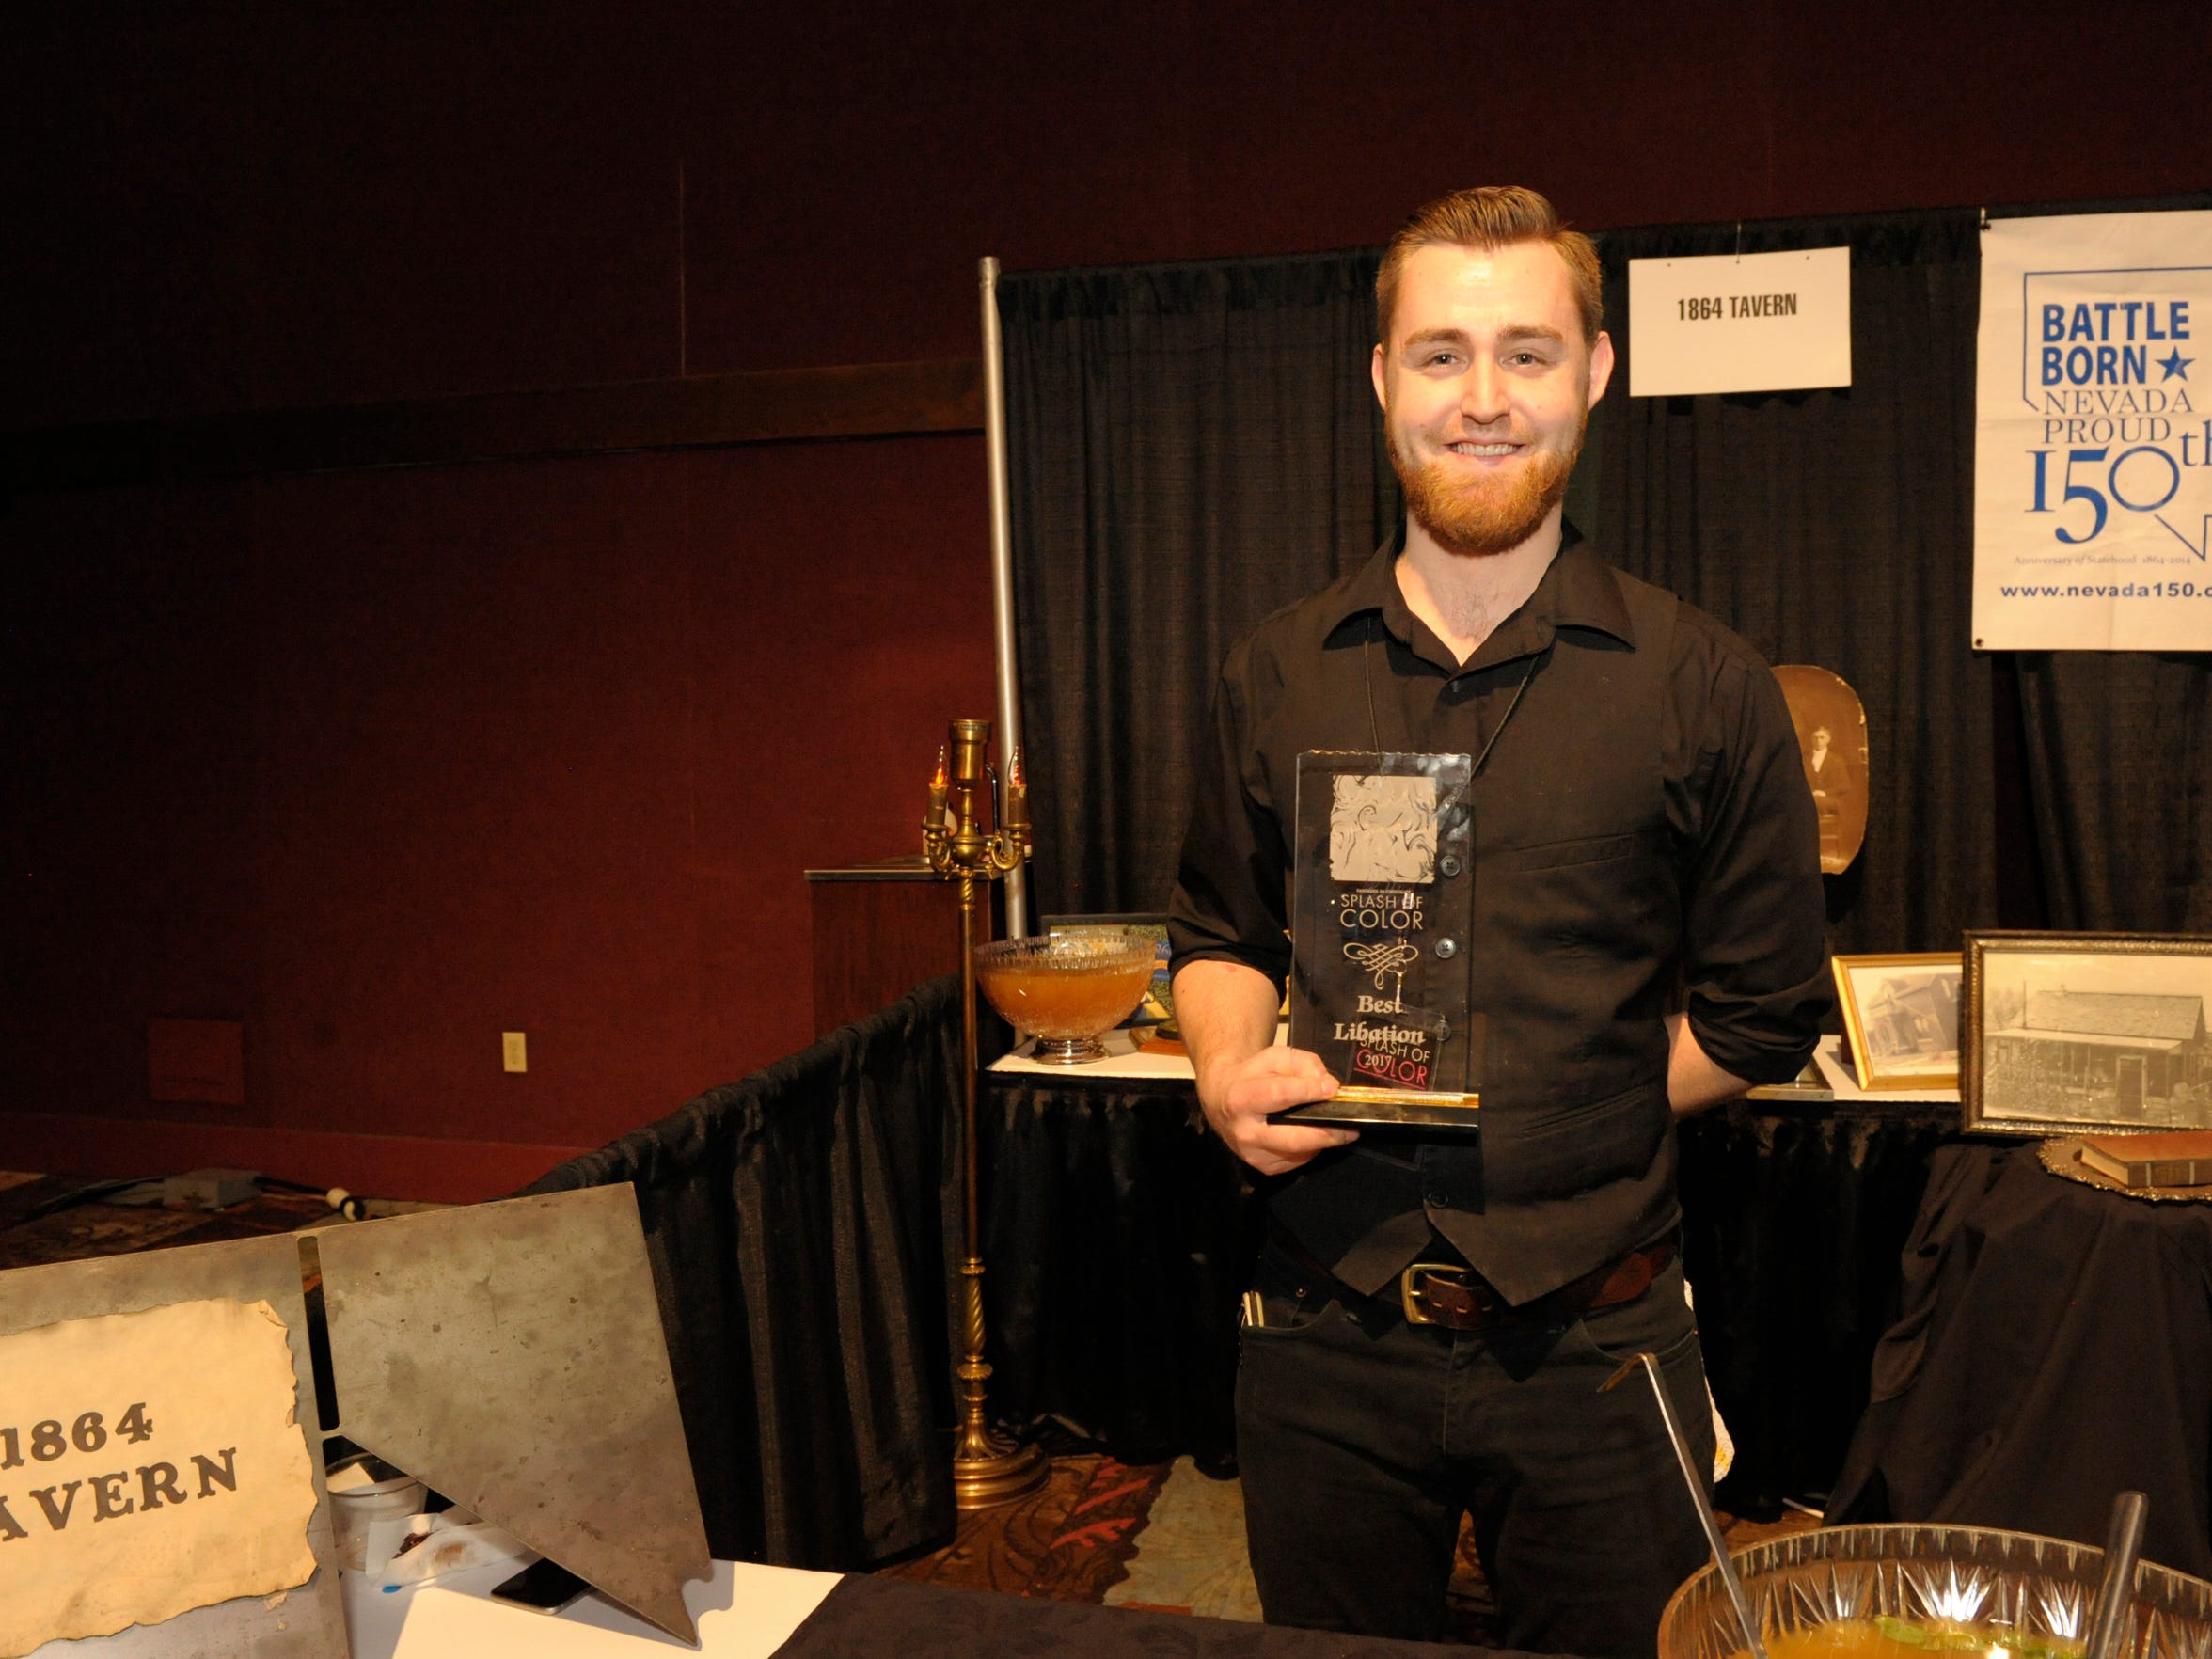 1864 Tavern, one of Reno's best craft cocktail bars, is returning as one of scores of vendors participating in 2018 Fantasies in Chocolate on Nov. 17 at Grand Sierra Resort and Casino.